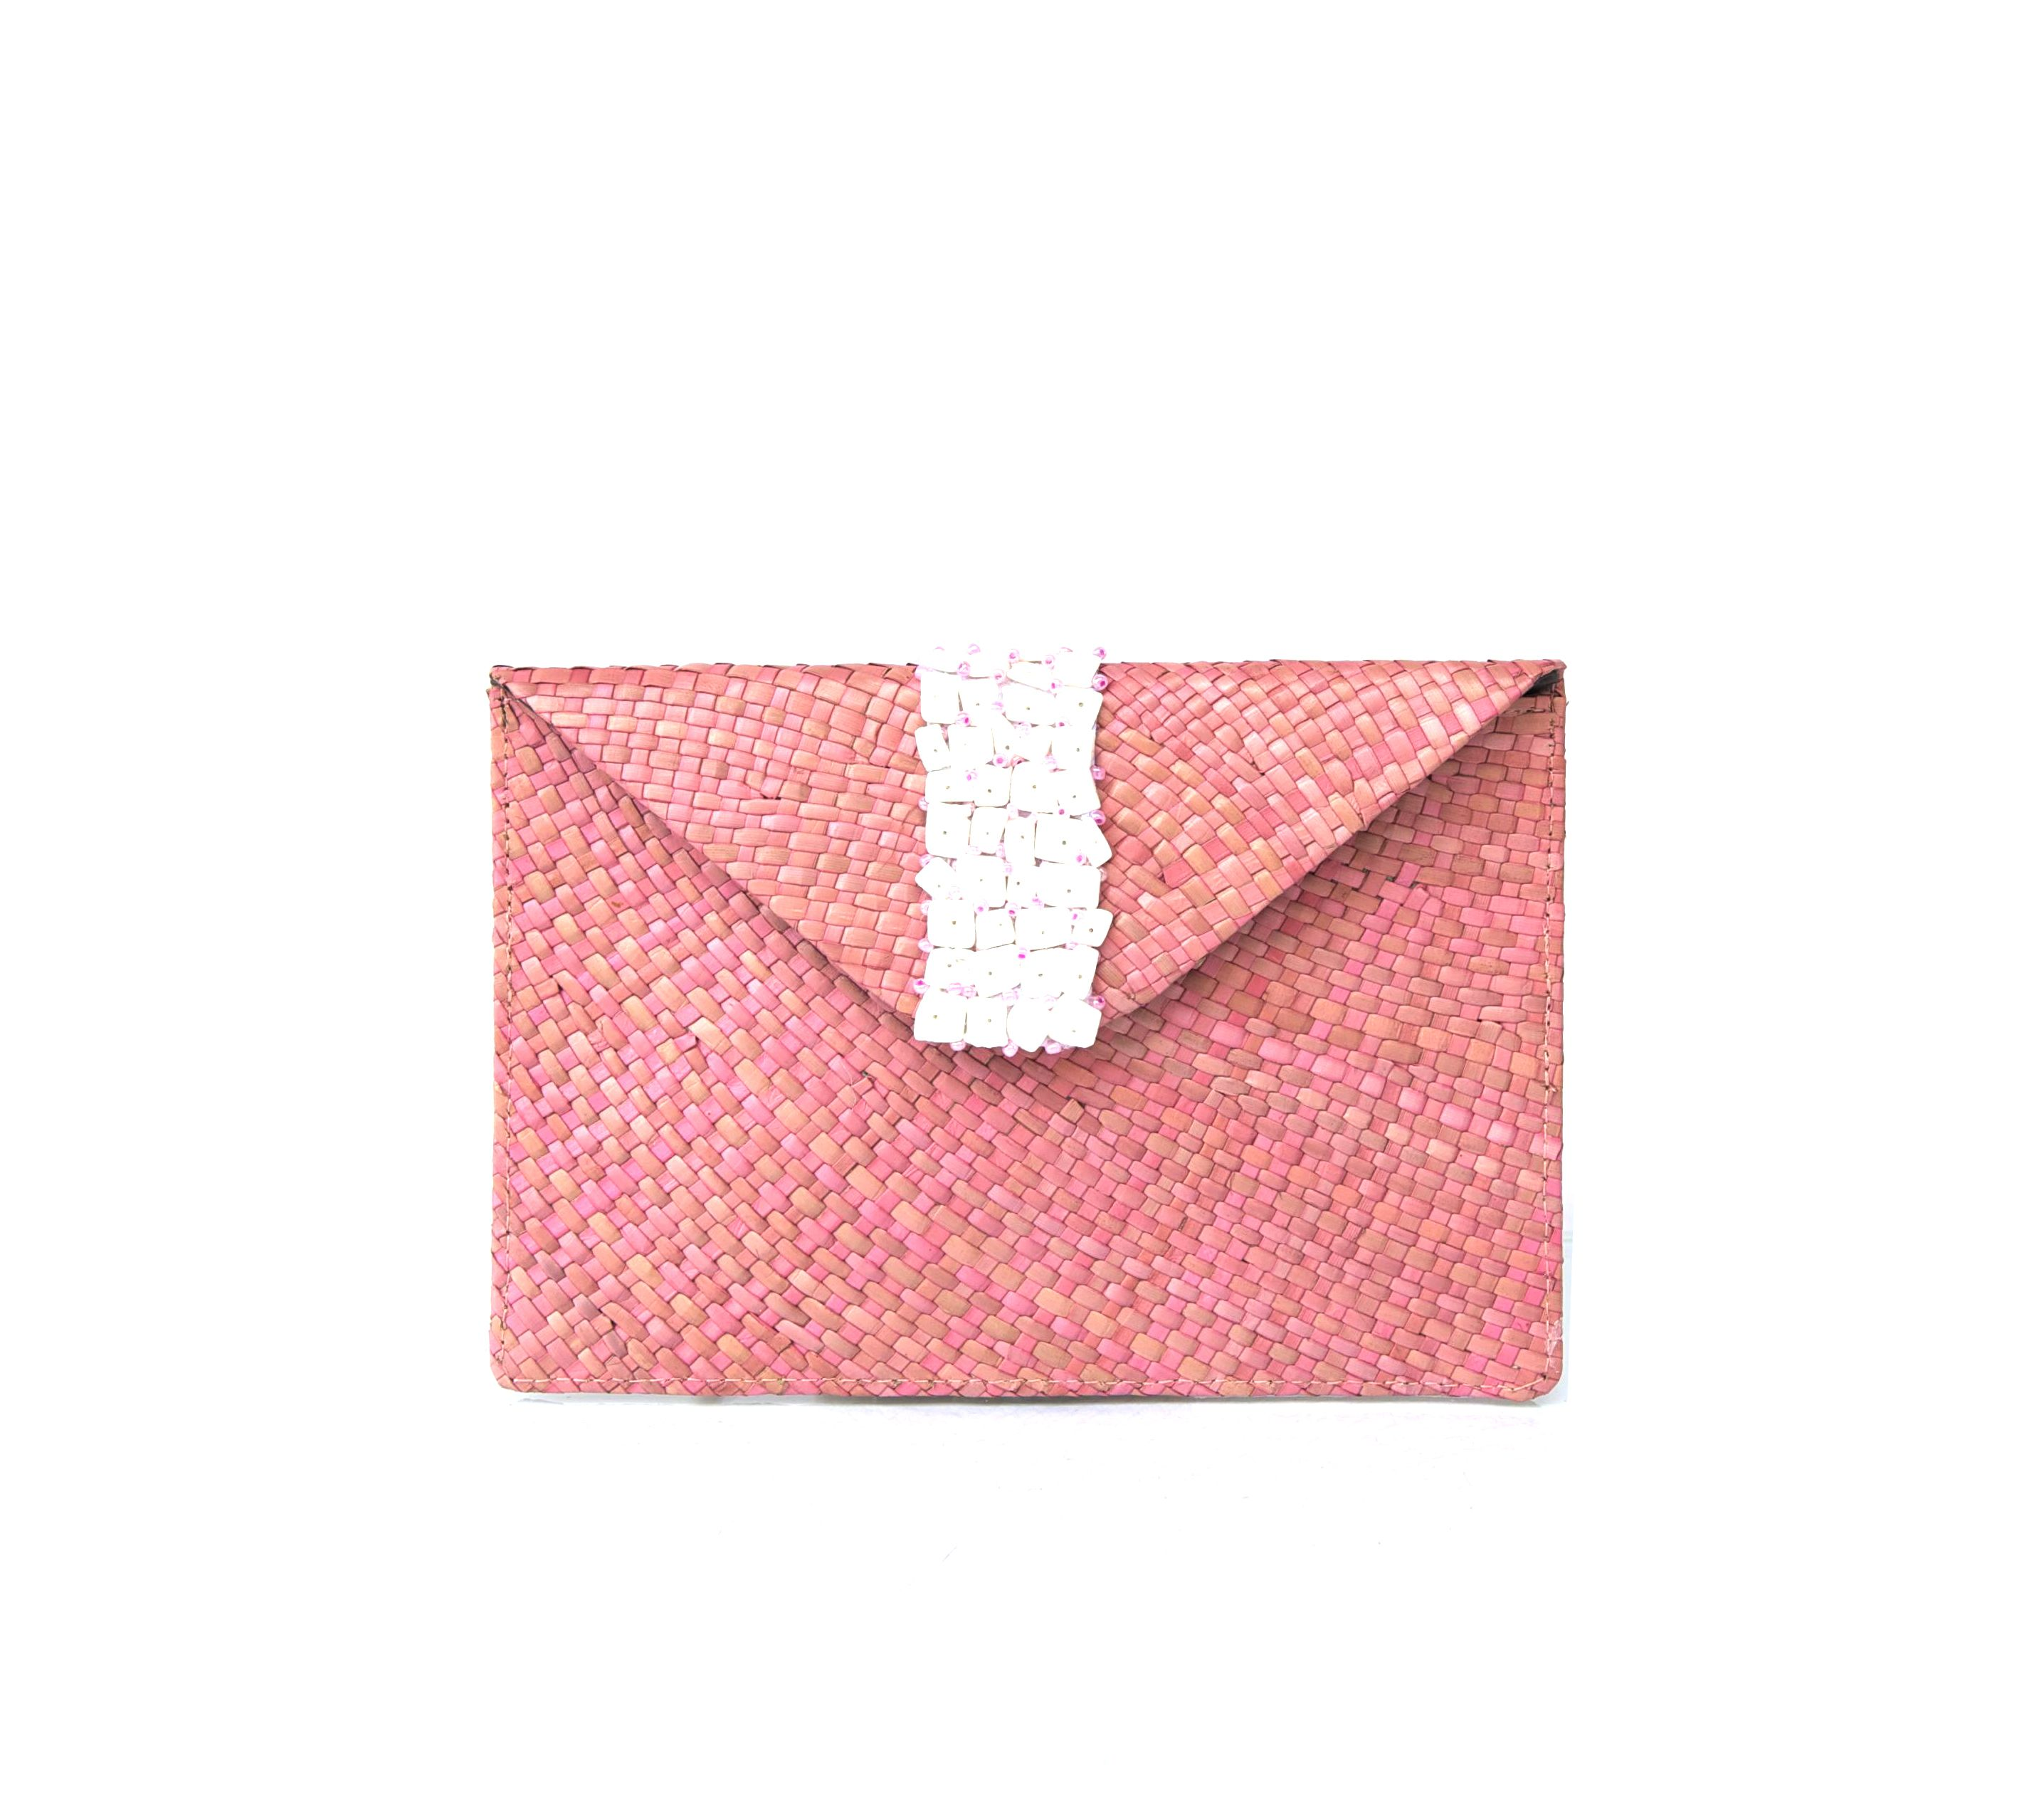 Straw clutch w/ paillettes shells. #pink #clutch #shell #straw